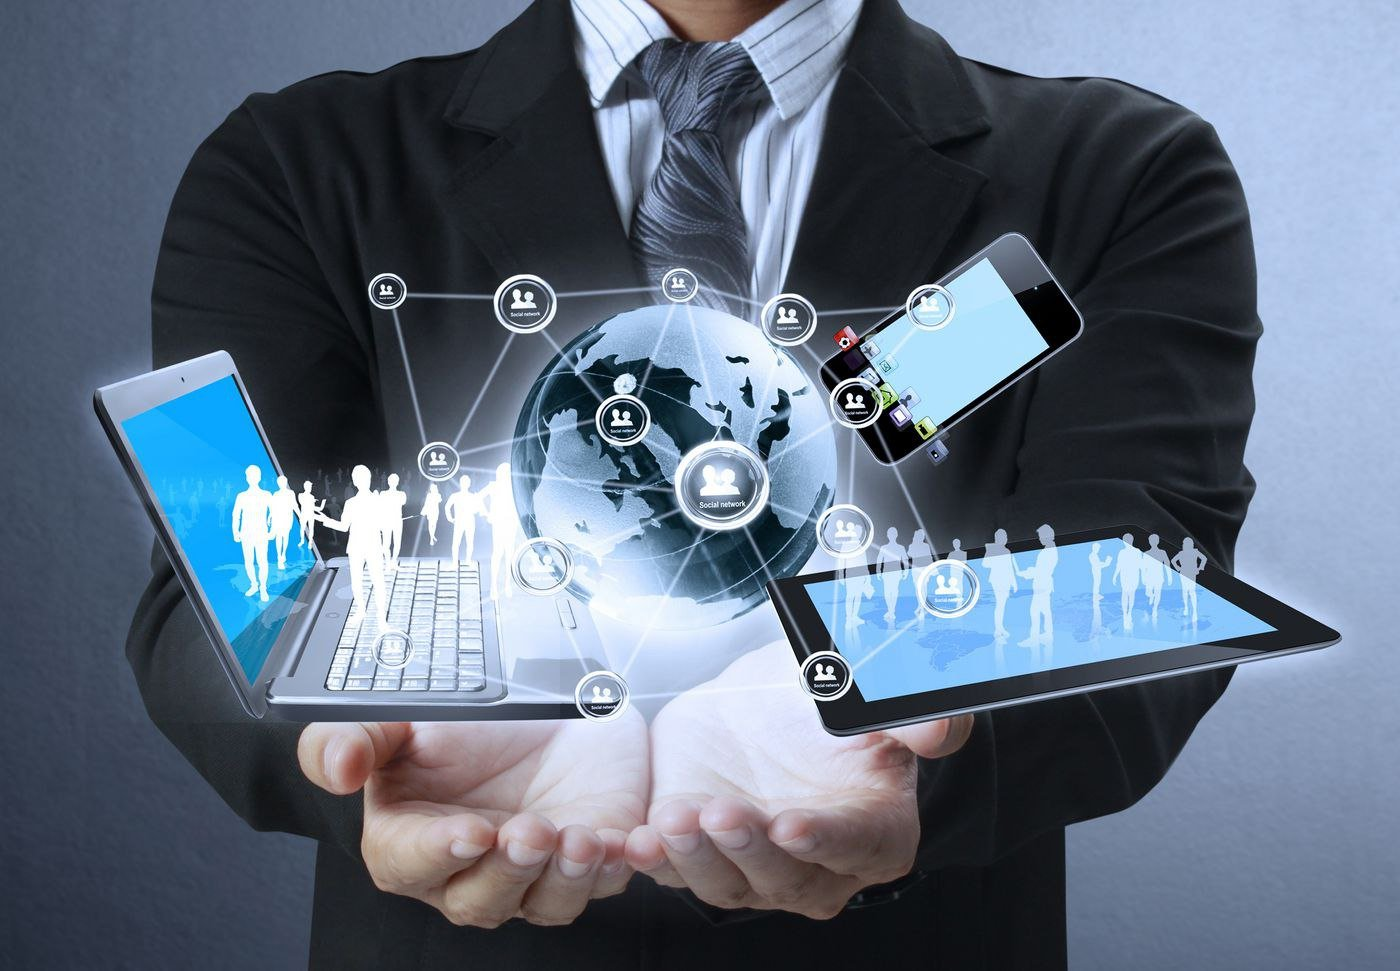 Should Your Company Introduce Mobile Devices to Do Business and Office Work?